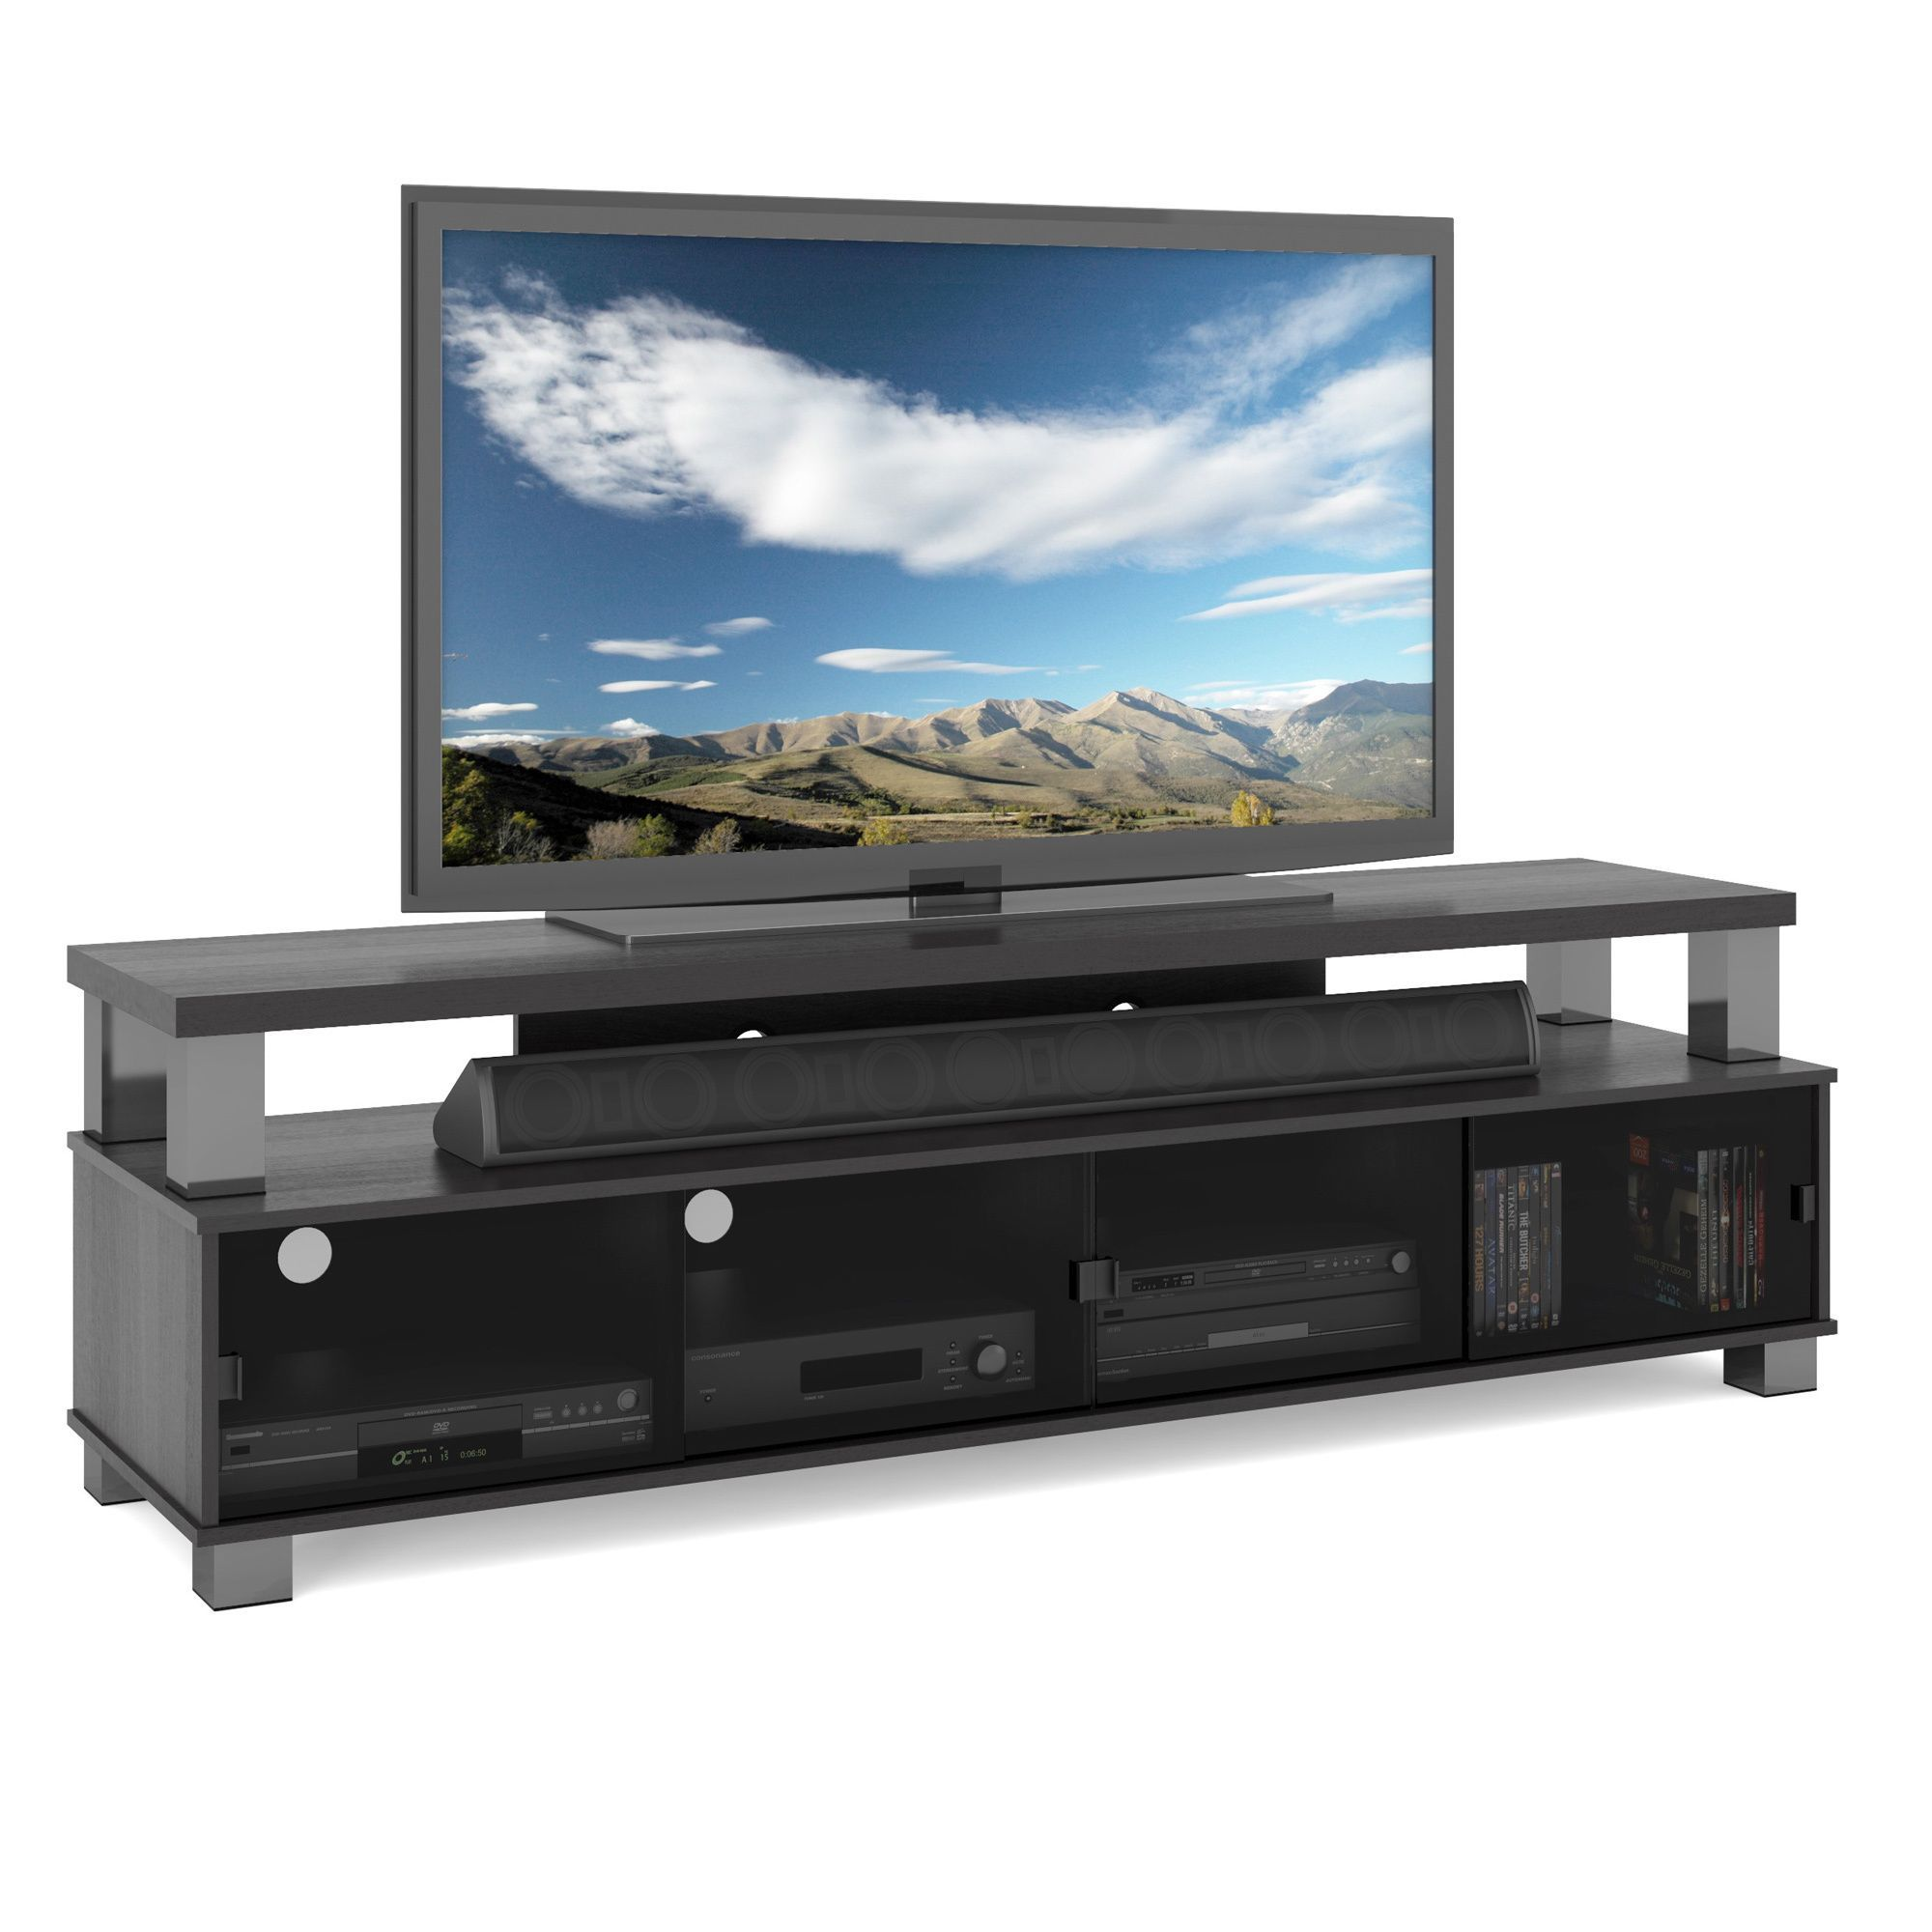 This Two Tiered Tv Bench Helps You Create A Great Home Theater Area As It Showcases Your Flat Screen Tv And Provides Convenien Tv Bench Tv Stand Cool Tv Stands